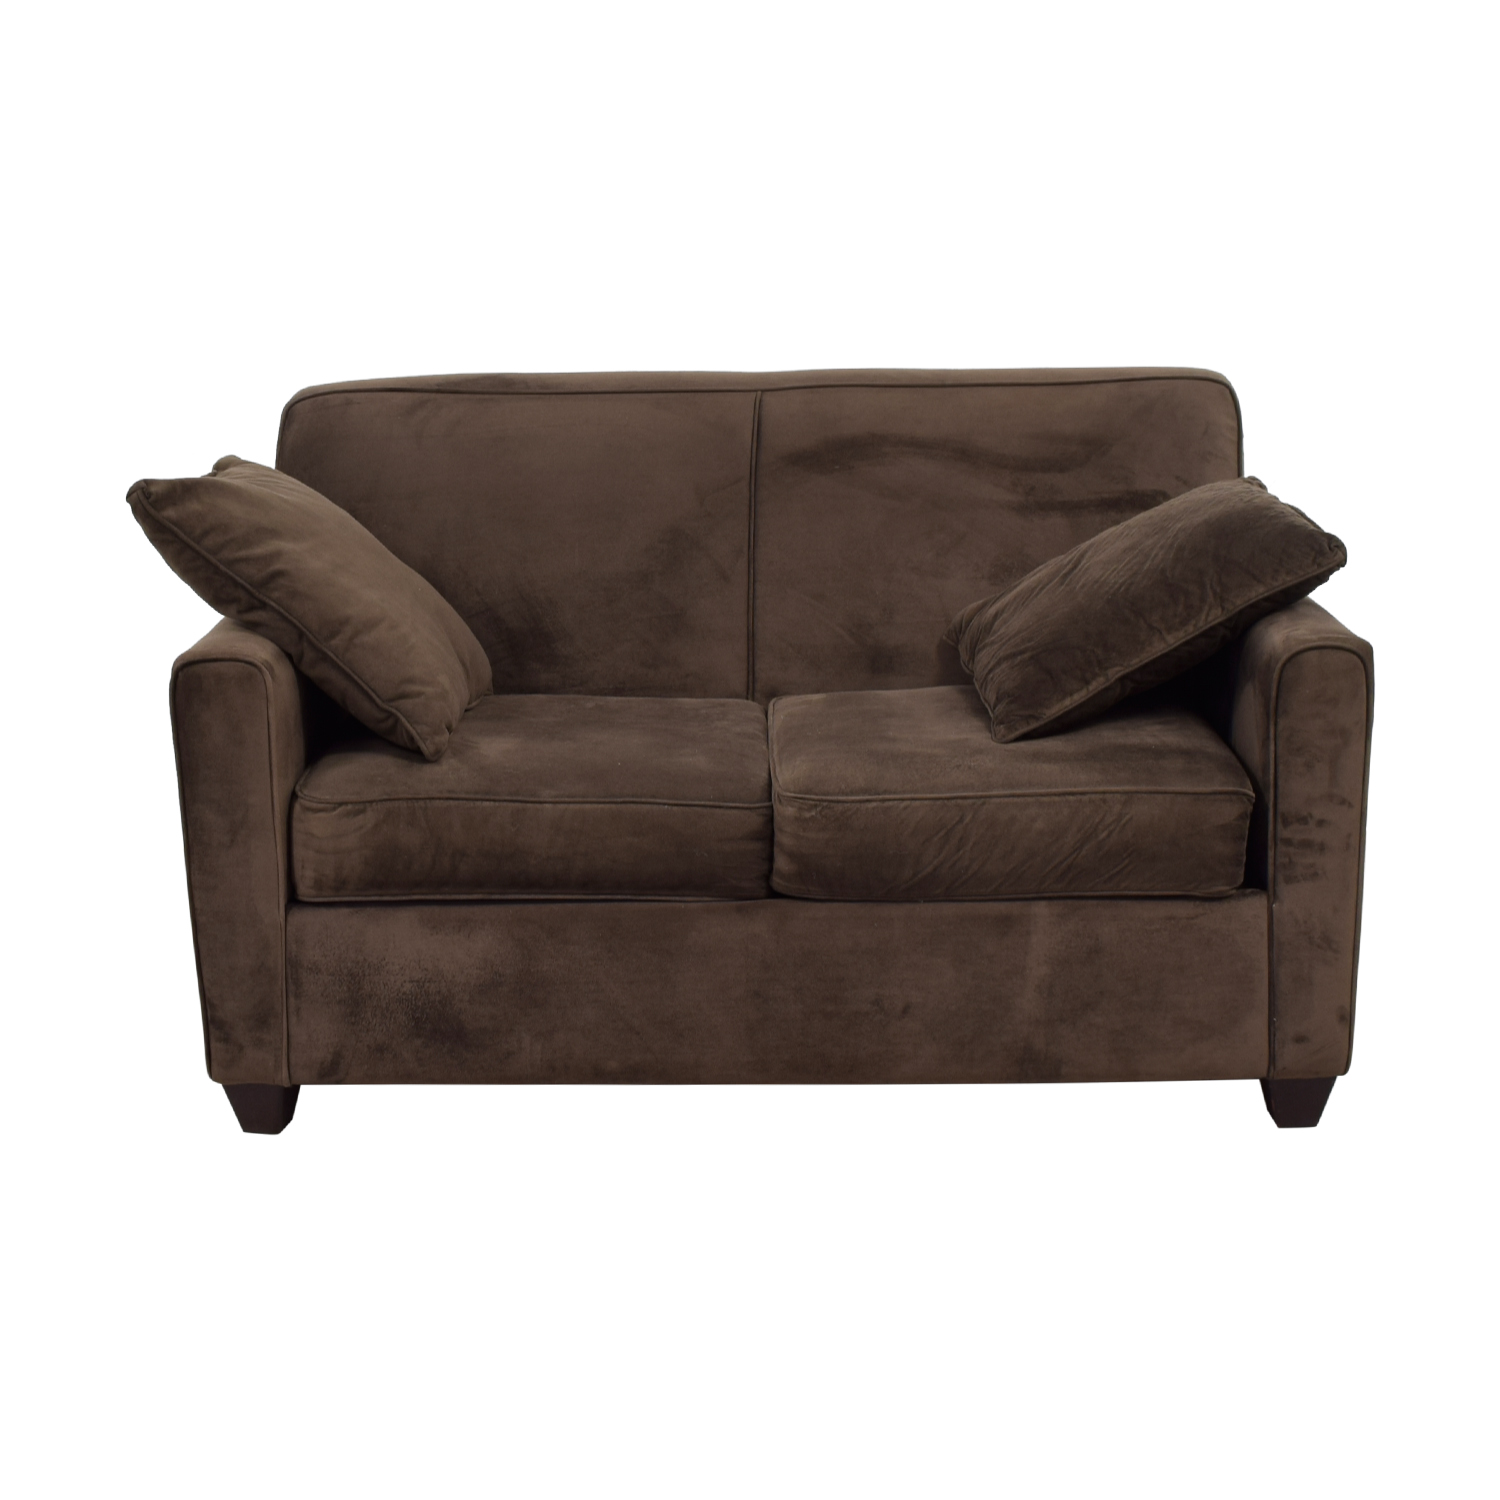 Ashley's Furniture Brown Faux Suede Loveseat / Sofas